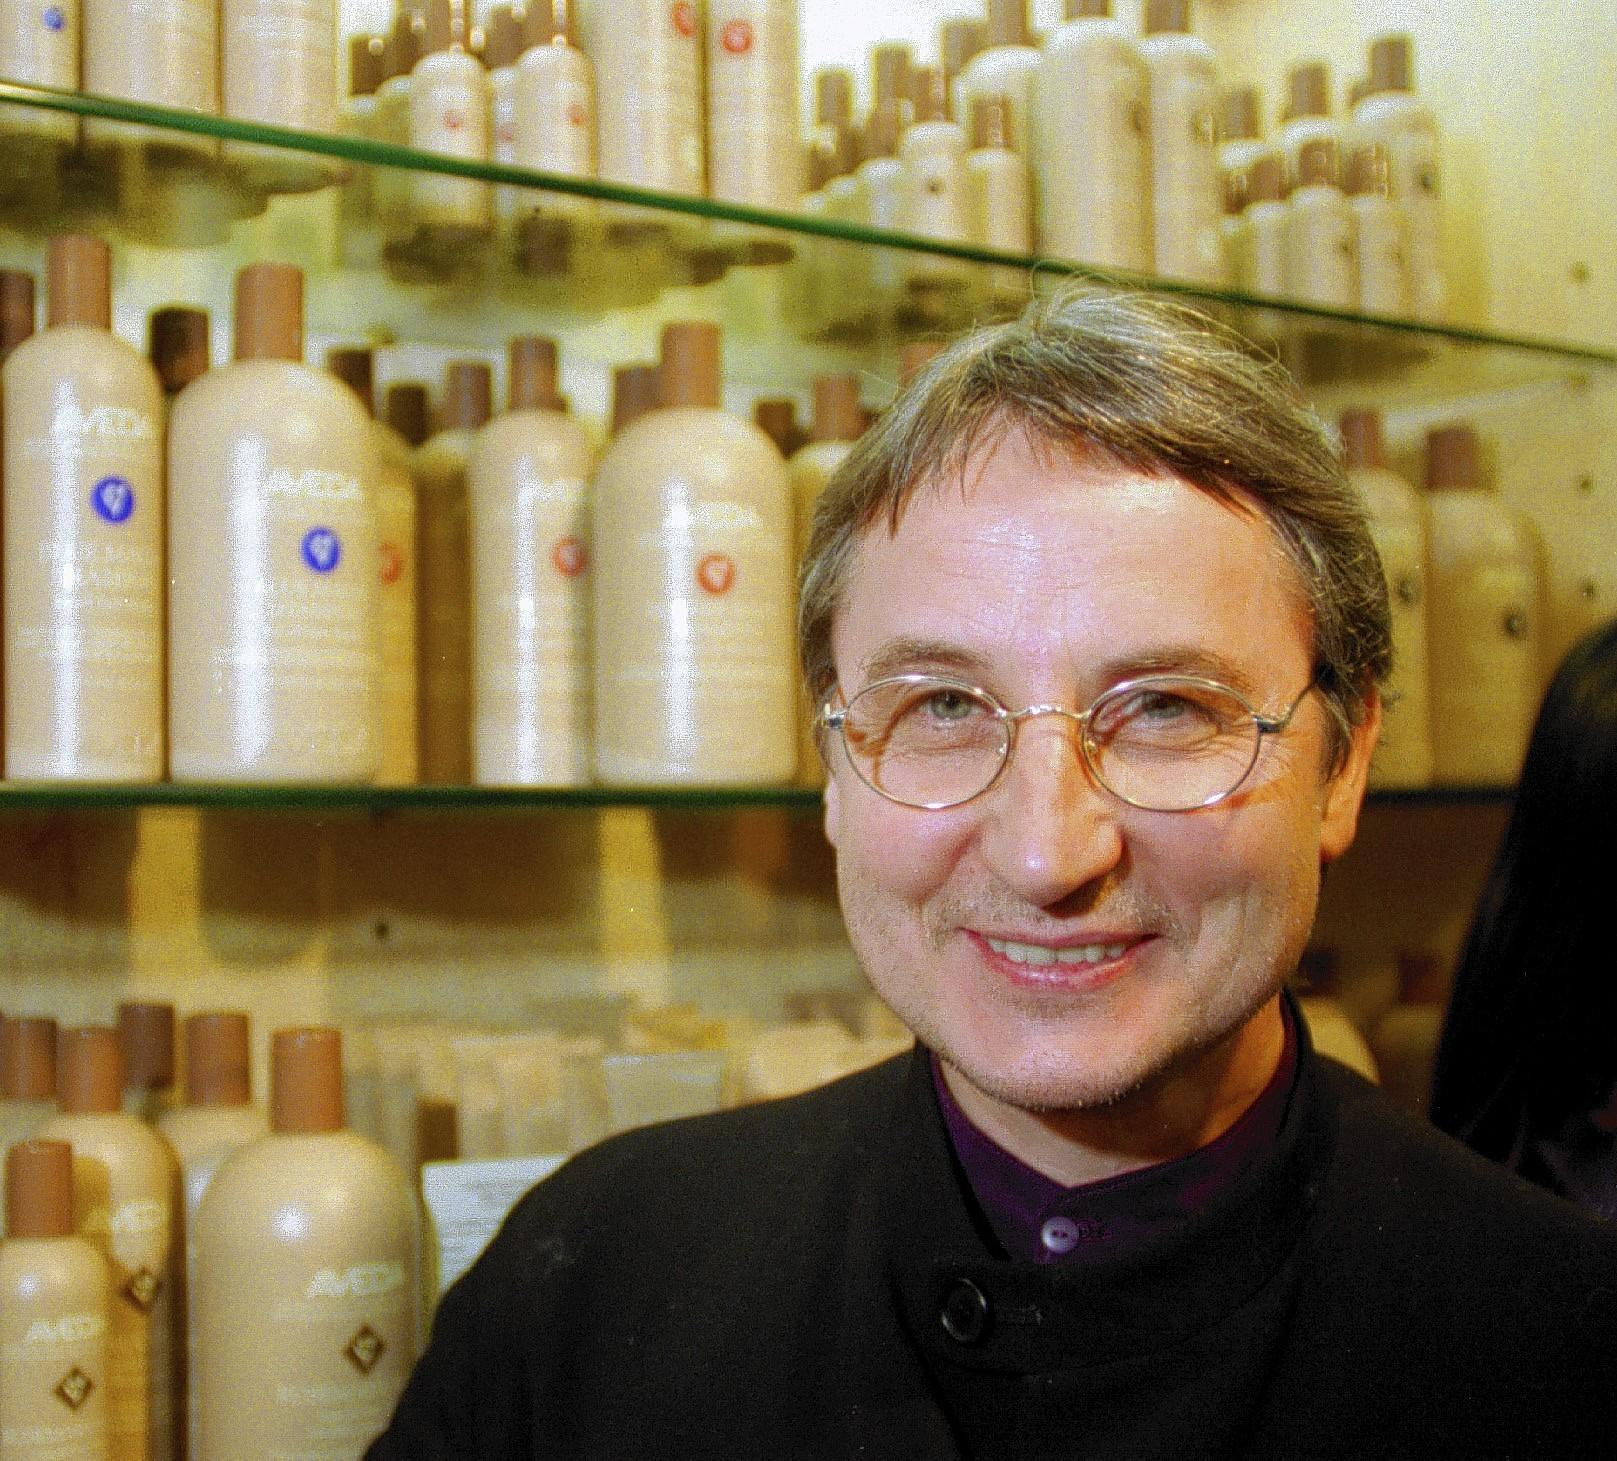 Horst Rechelbacher built Aveda into an international brand known for its eco-friendly practices and lush-smelling products.